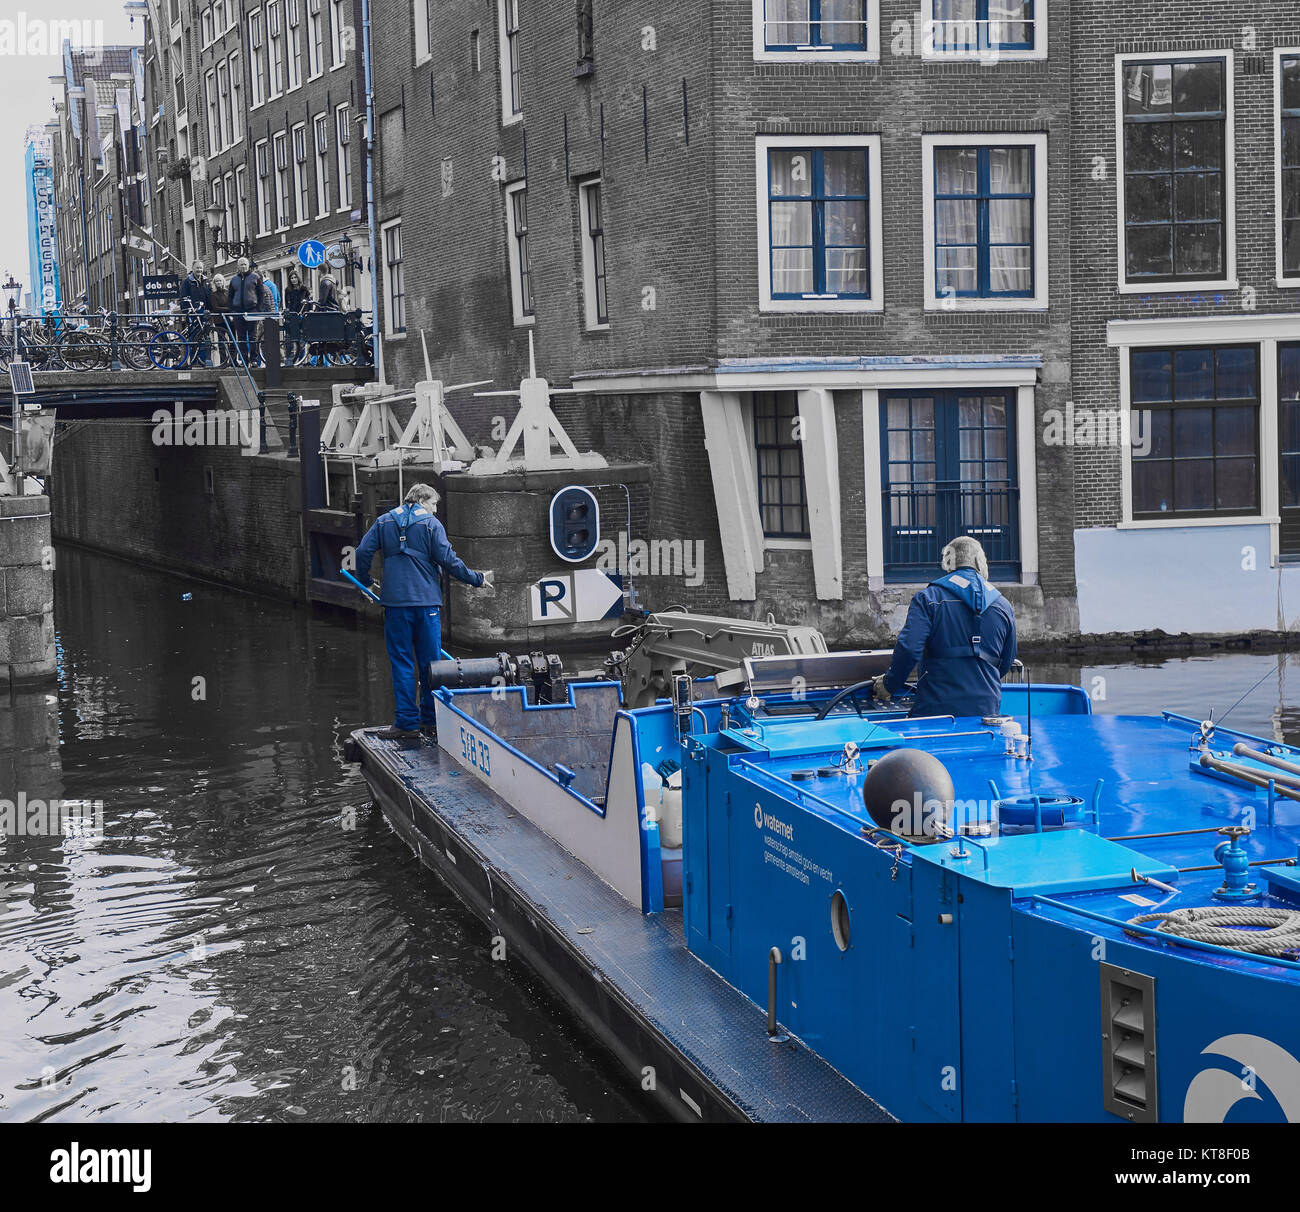 Man standing on cleaning barge fishing litter out of canal, Amsterdam, Holland - Stock Image